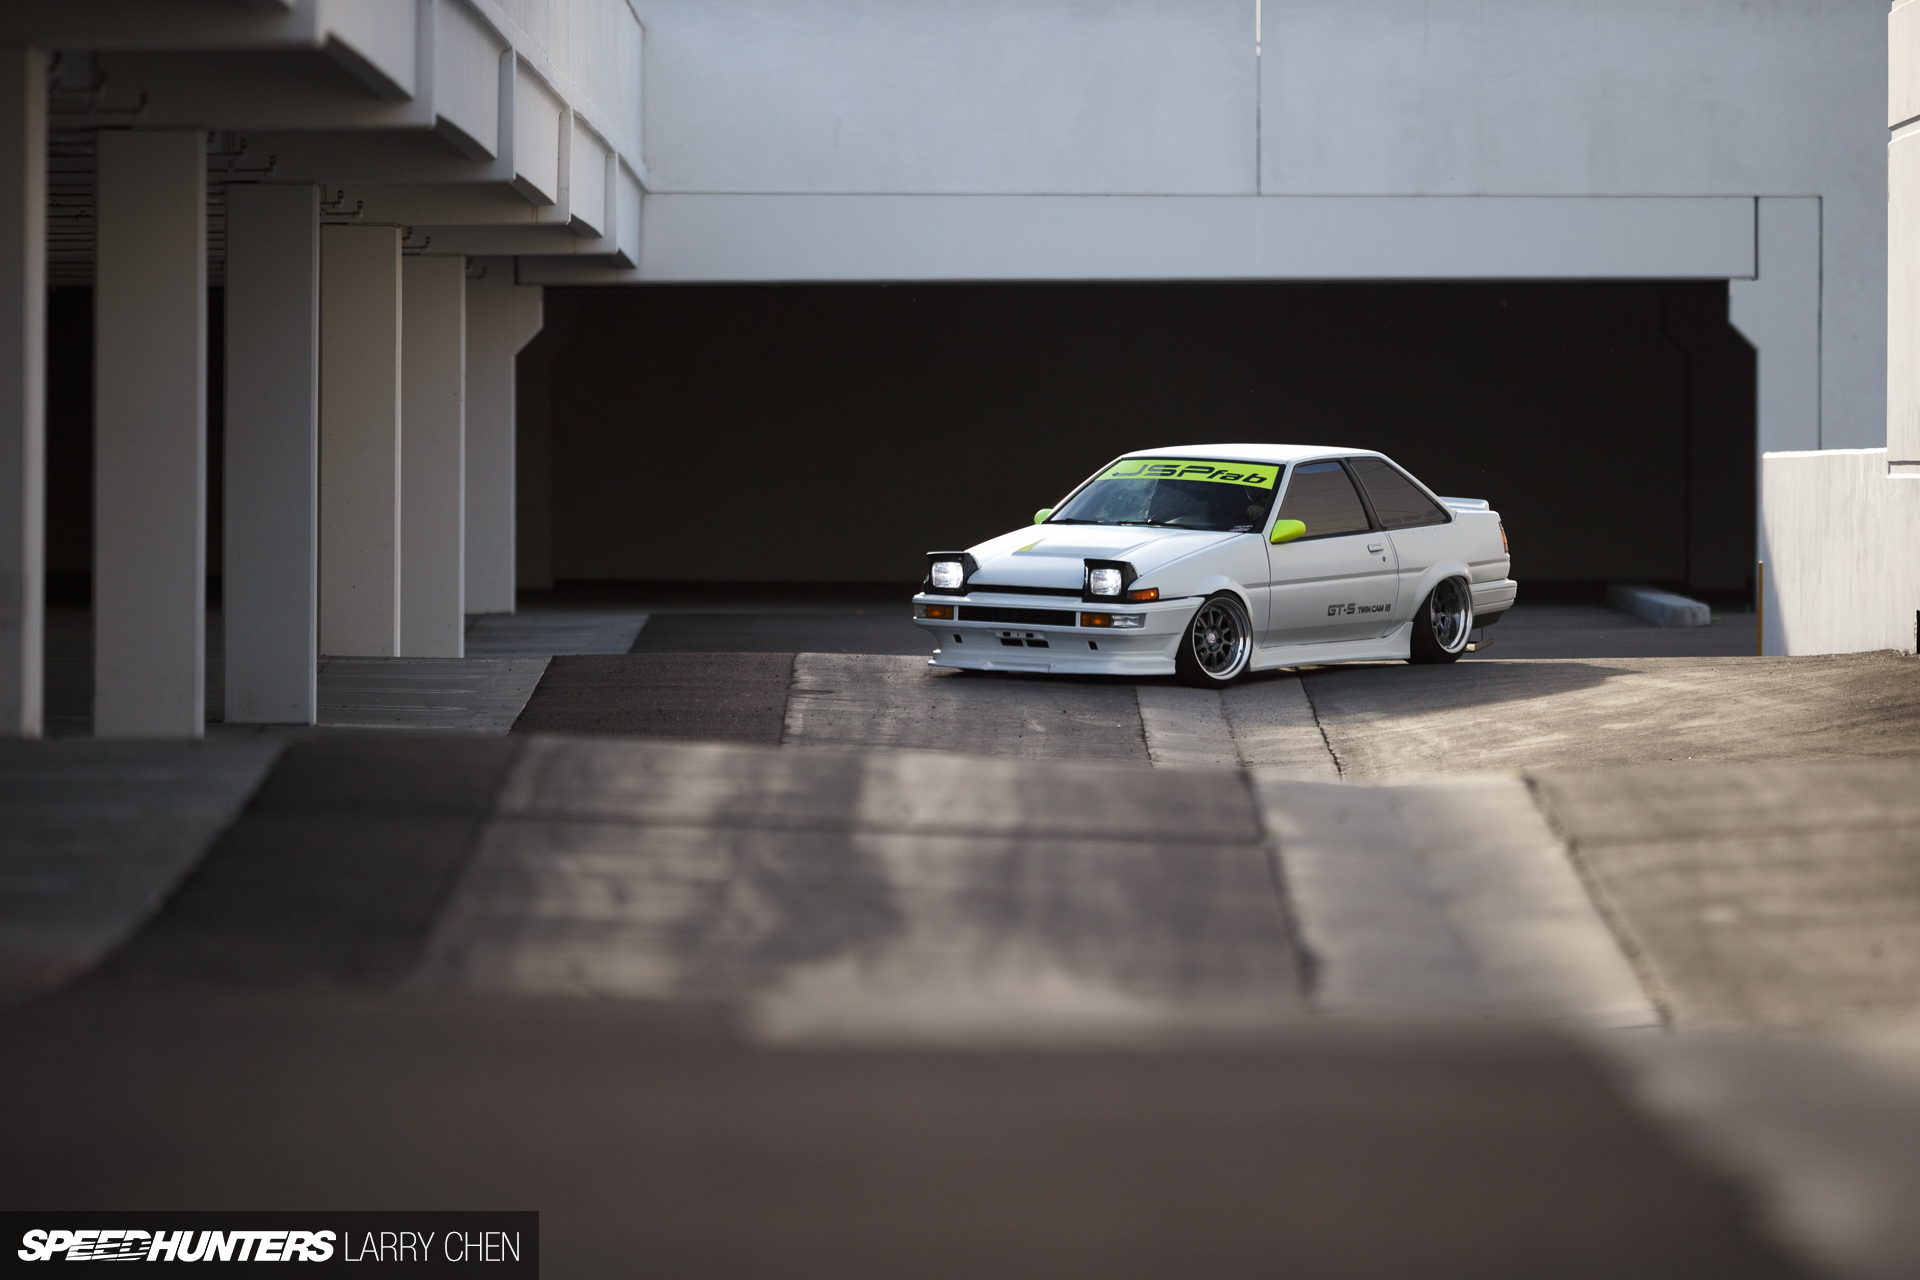 Temple Of Vtec >> From Daily Beater To VTEC Glory: An AE86 Story - Speedhunters